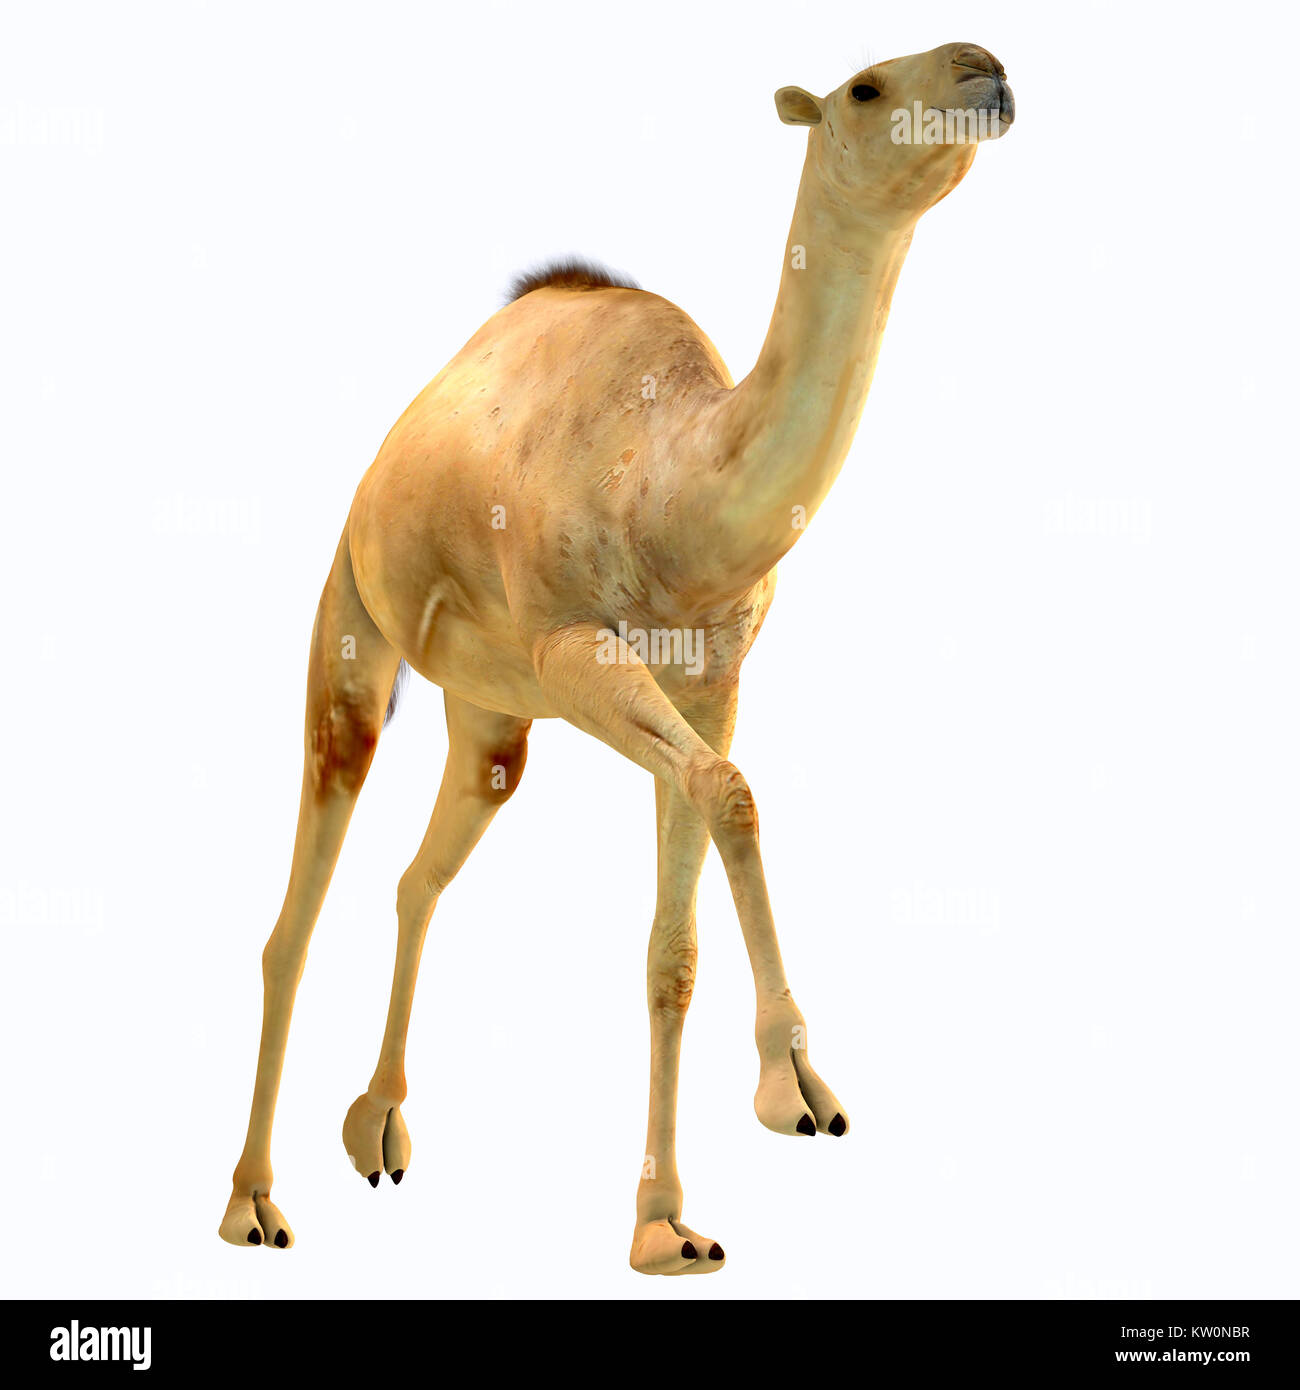 Camelops hesternus on White - Camelops was a camel-type herbivorous animal that lived in North America during the - Stock Image